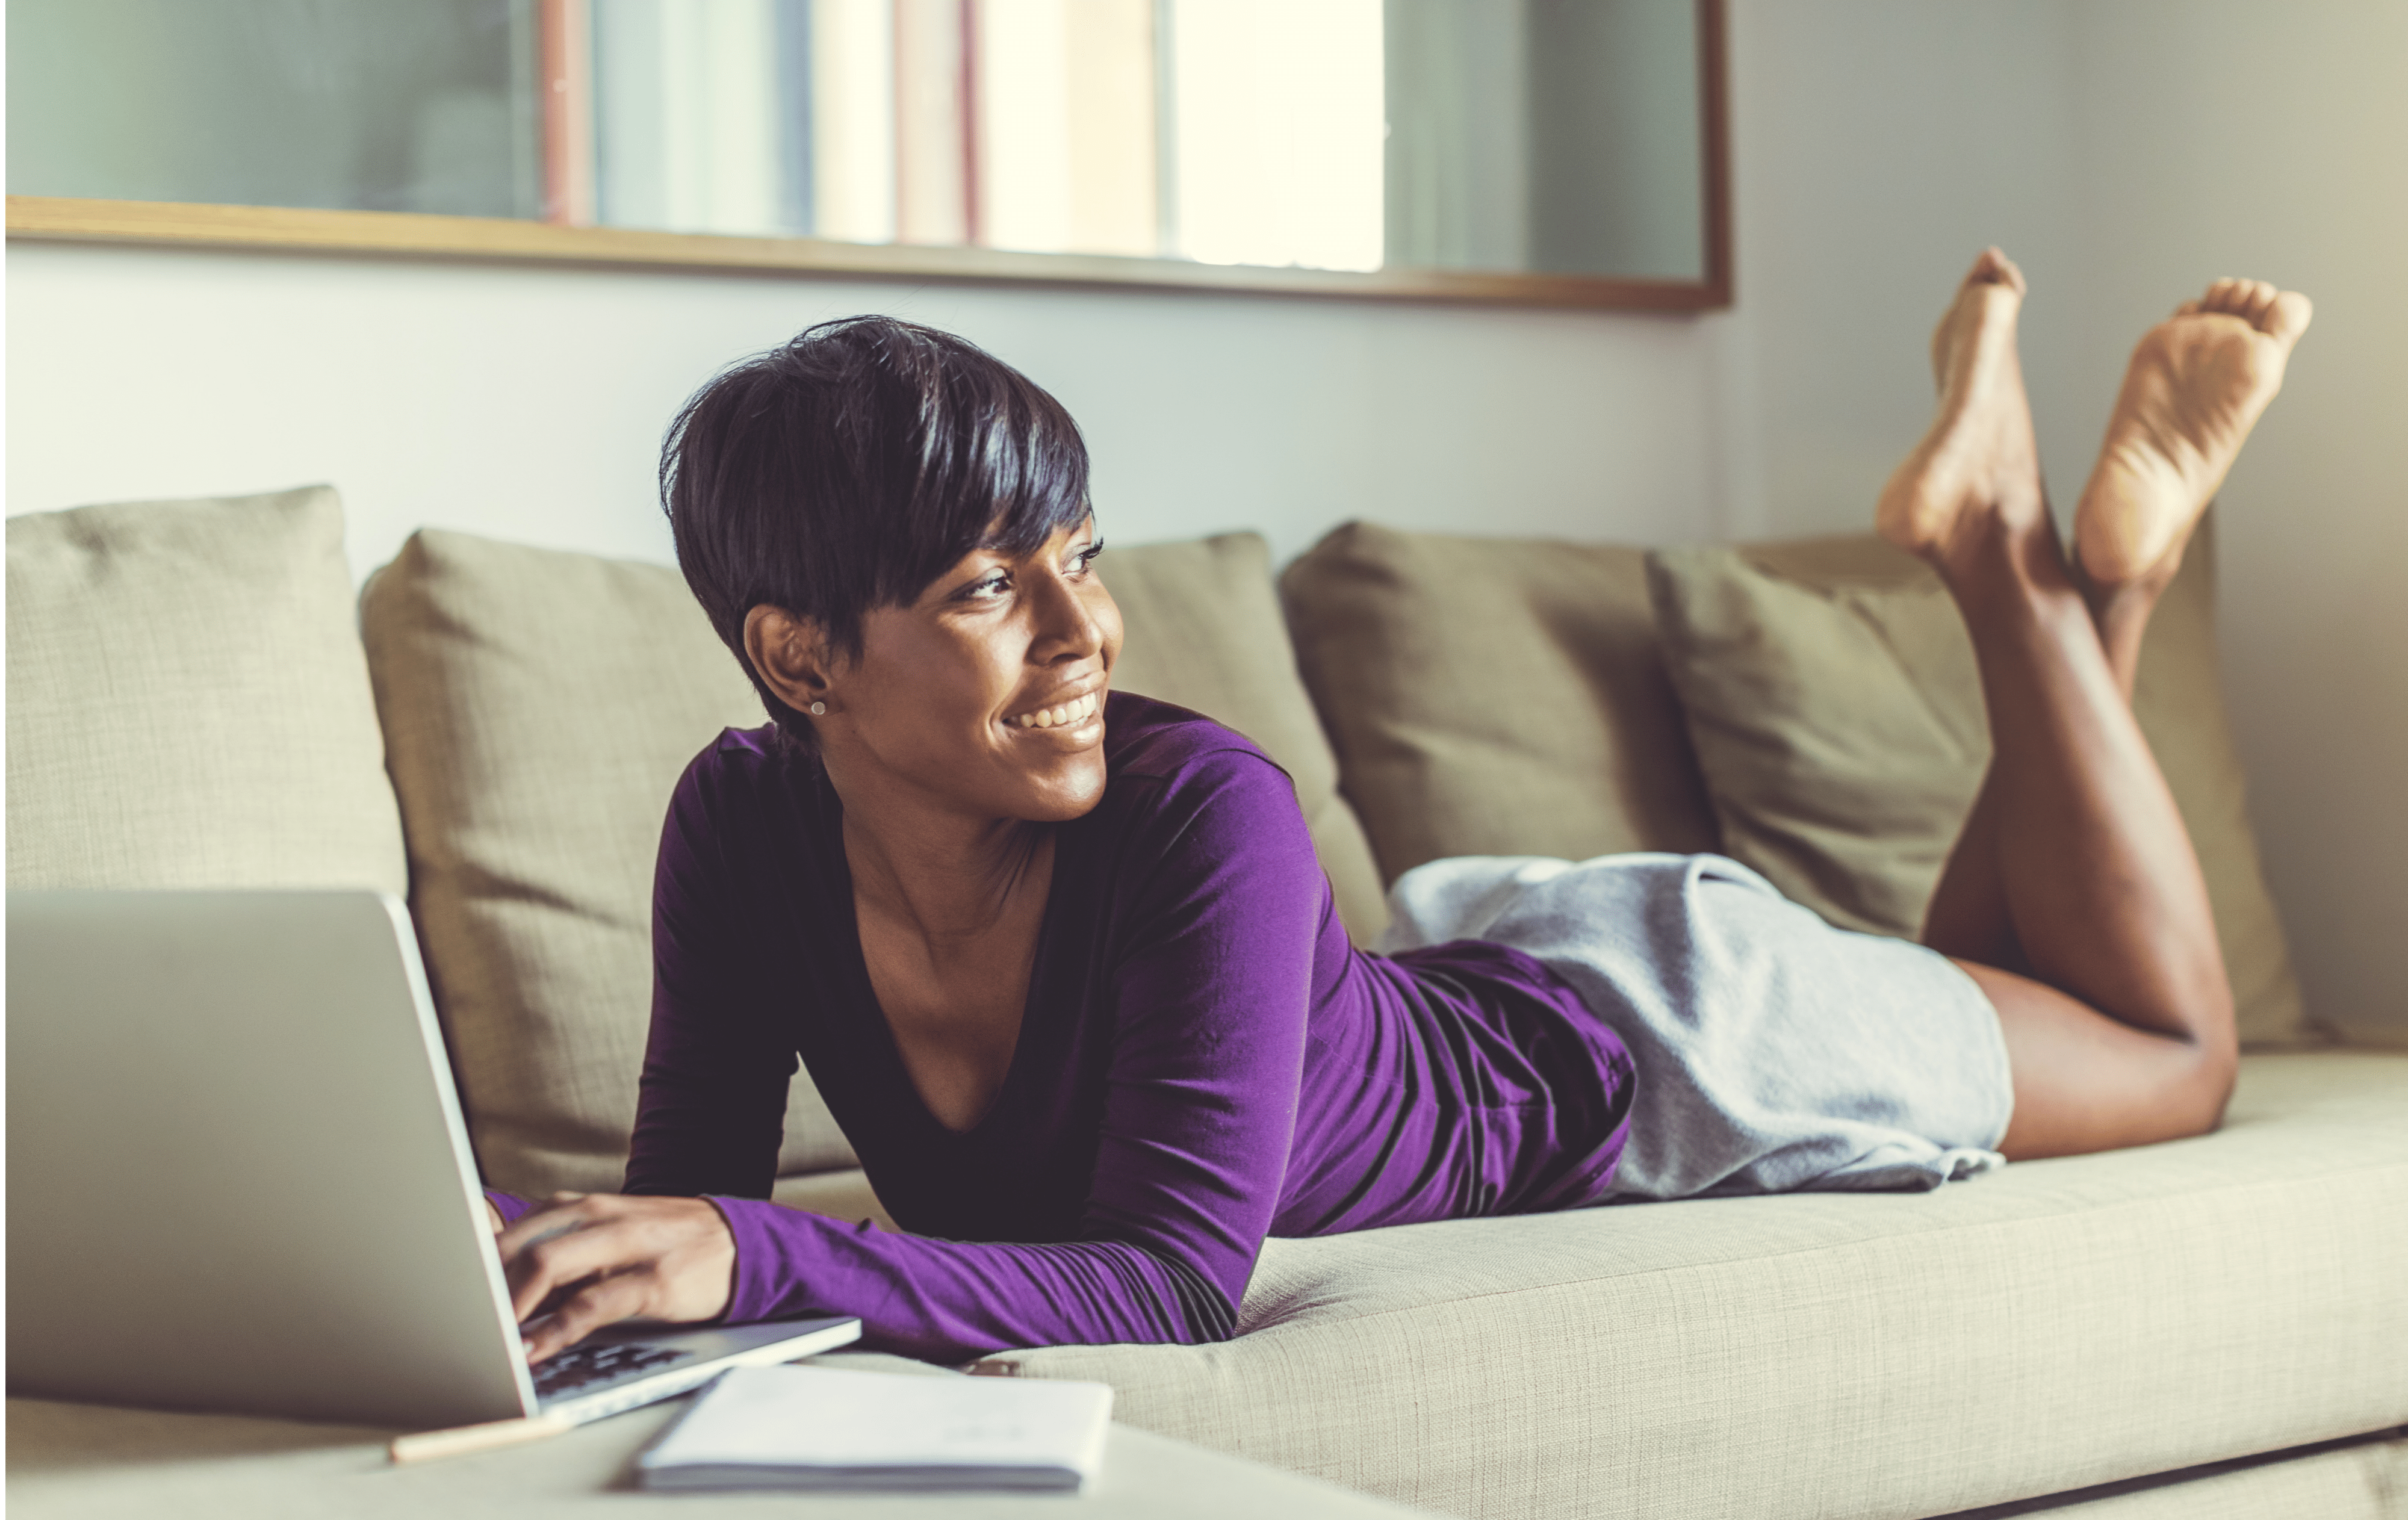 A person of color is laying on their stomach atop a beige couch. They are wearing a long sleeve purple shirt with gray sweatshorts: their hands are gently resting on the keyboard of their laptop as they look away from the camera and out the window. Their hair is short and dark and their dreamy smile is fixed on what they are seeing outside of the camera shot.